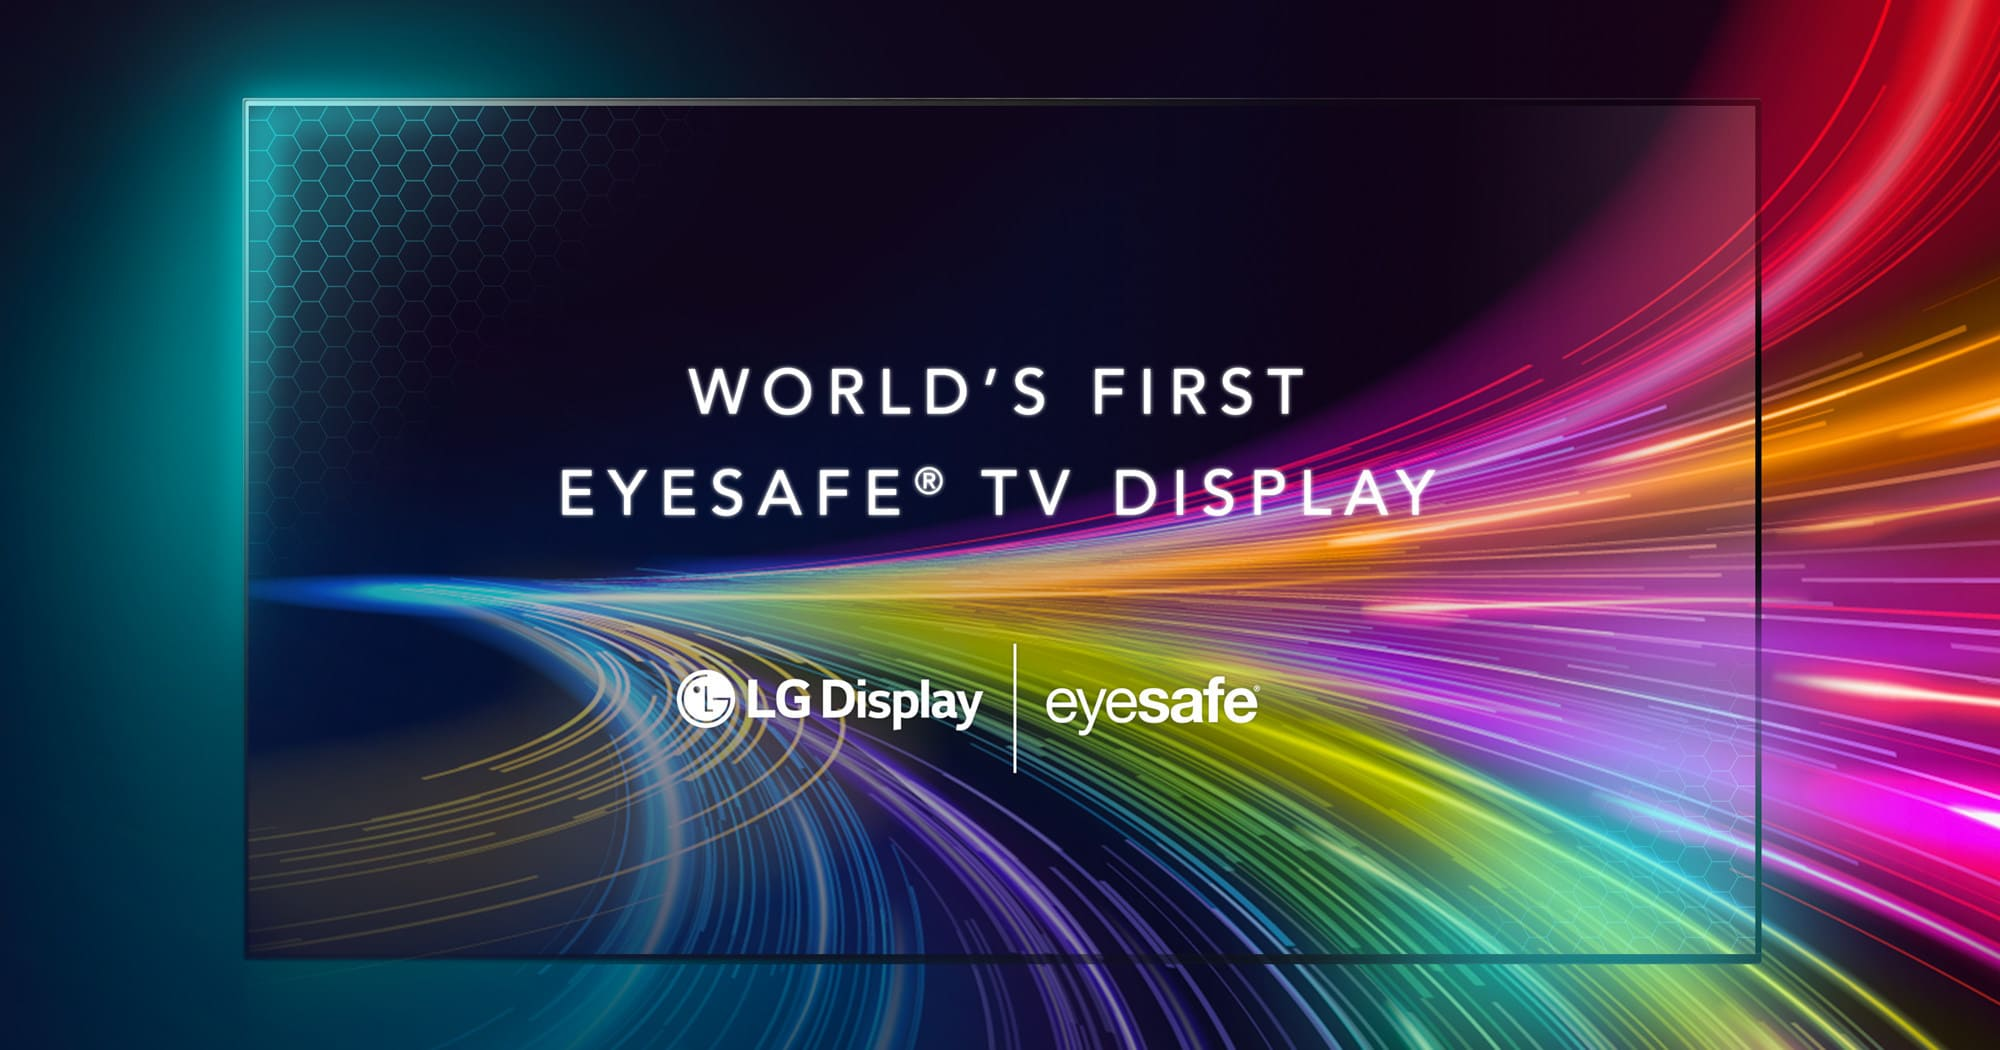 LG Display Announces the World's First Eyesafe® Certified TV Display